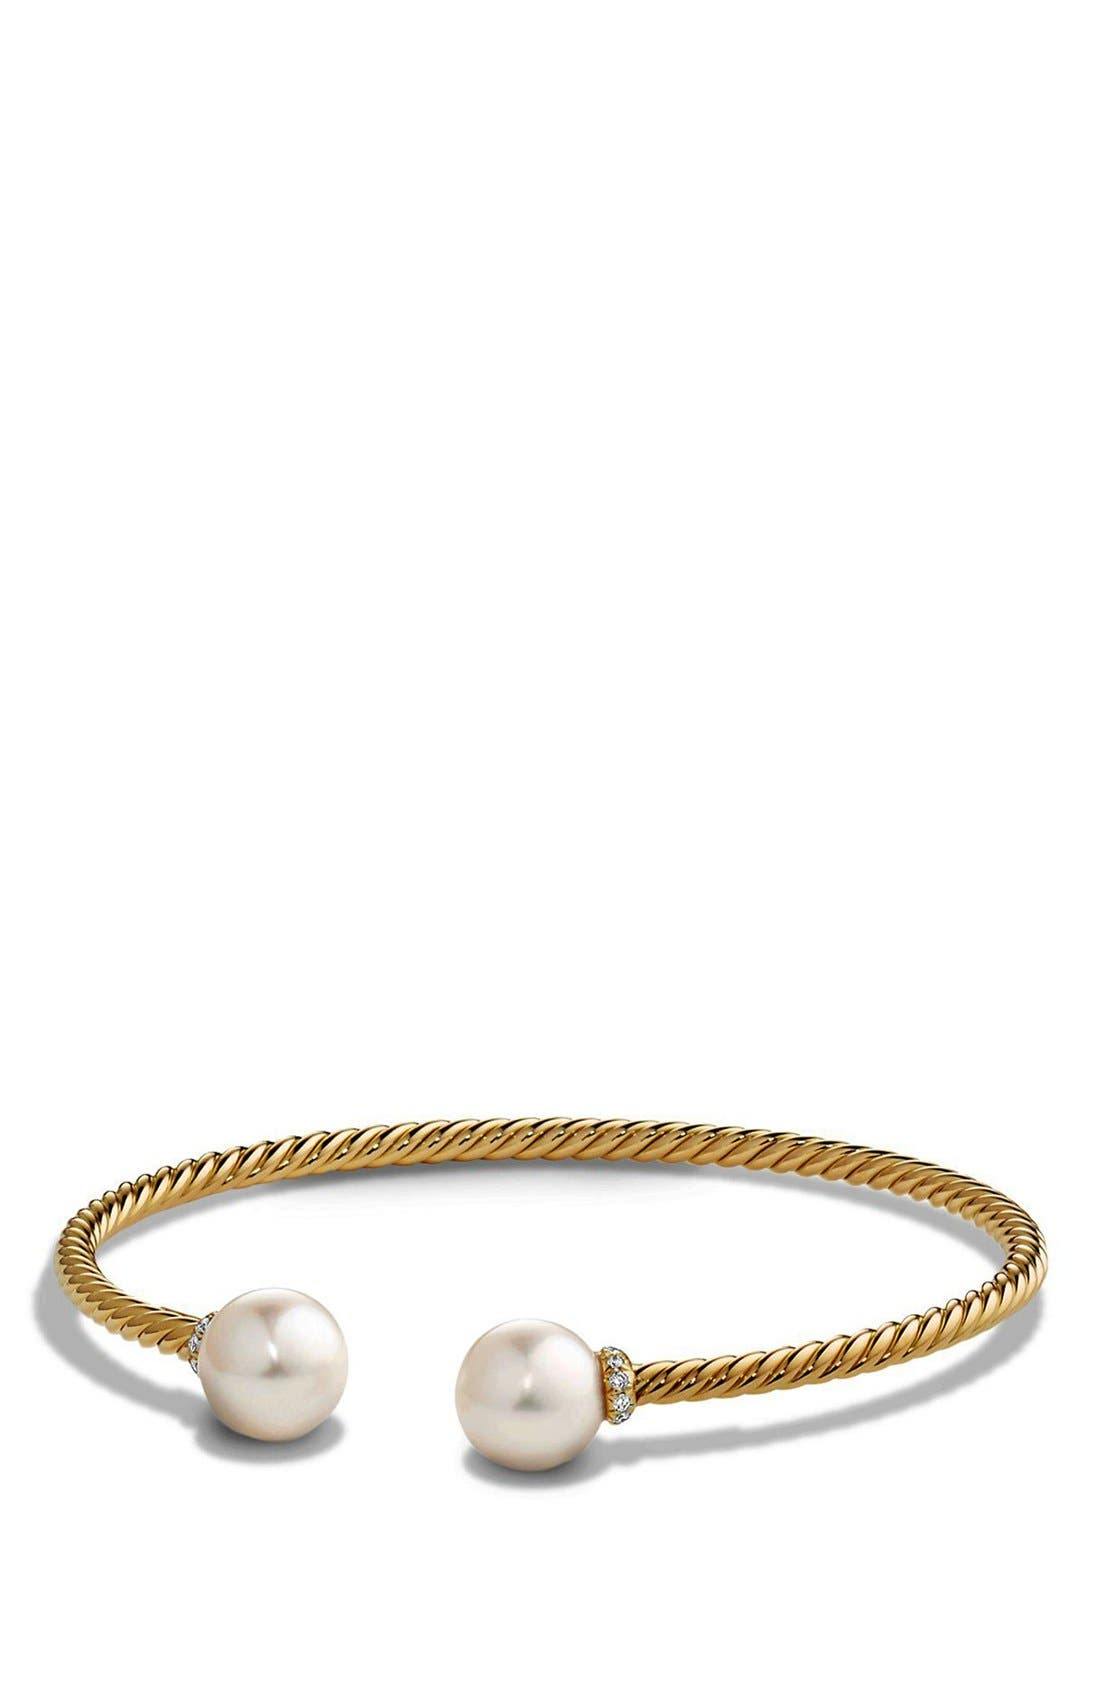 David Yurman 'Solari' Bead Bracelet with Diamonds and Pearls in 18K Gold